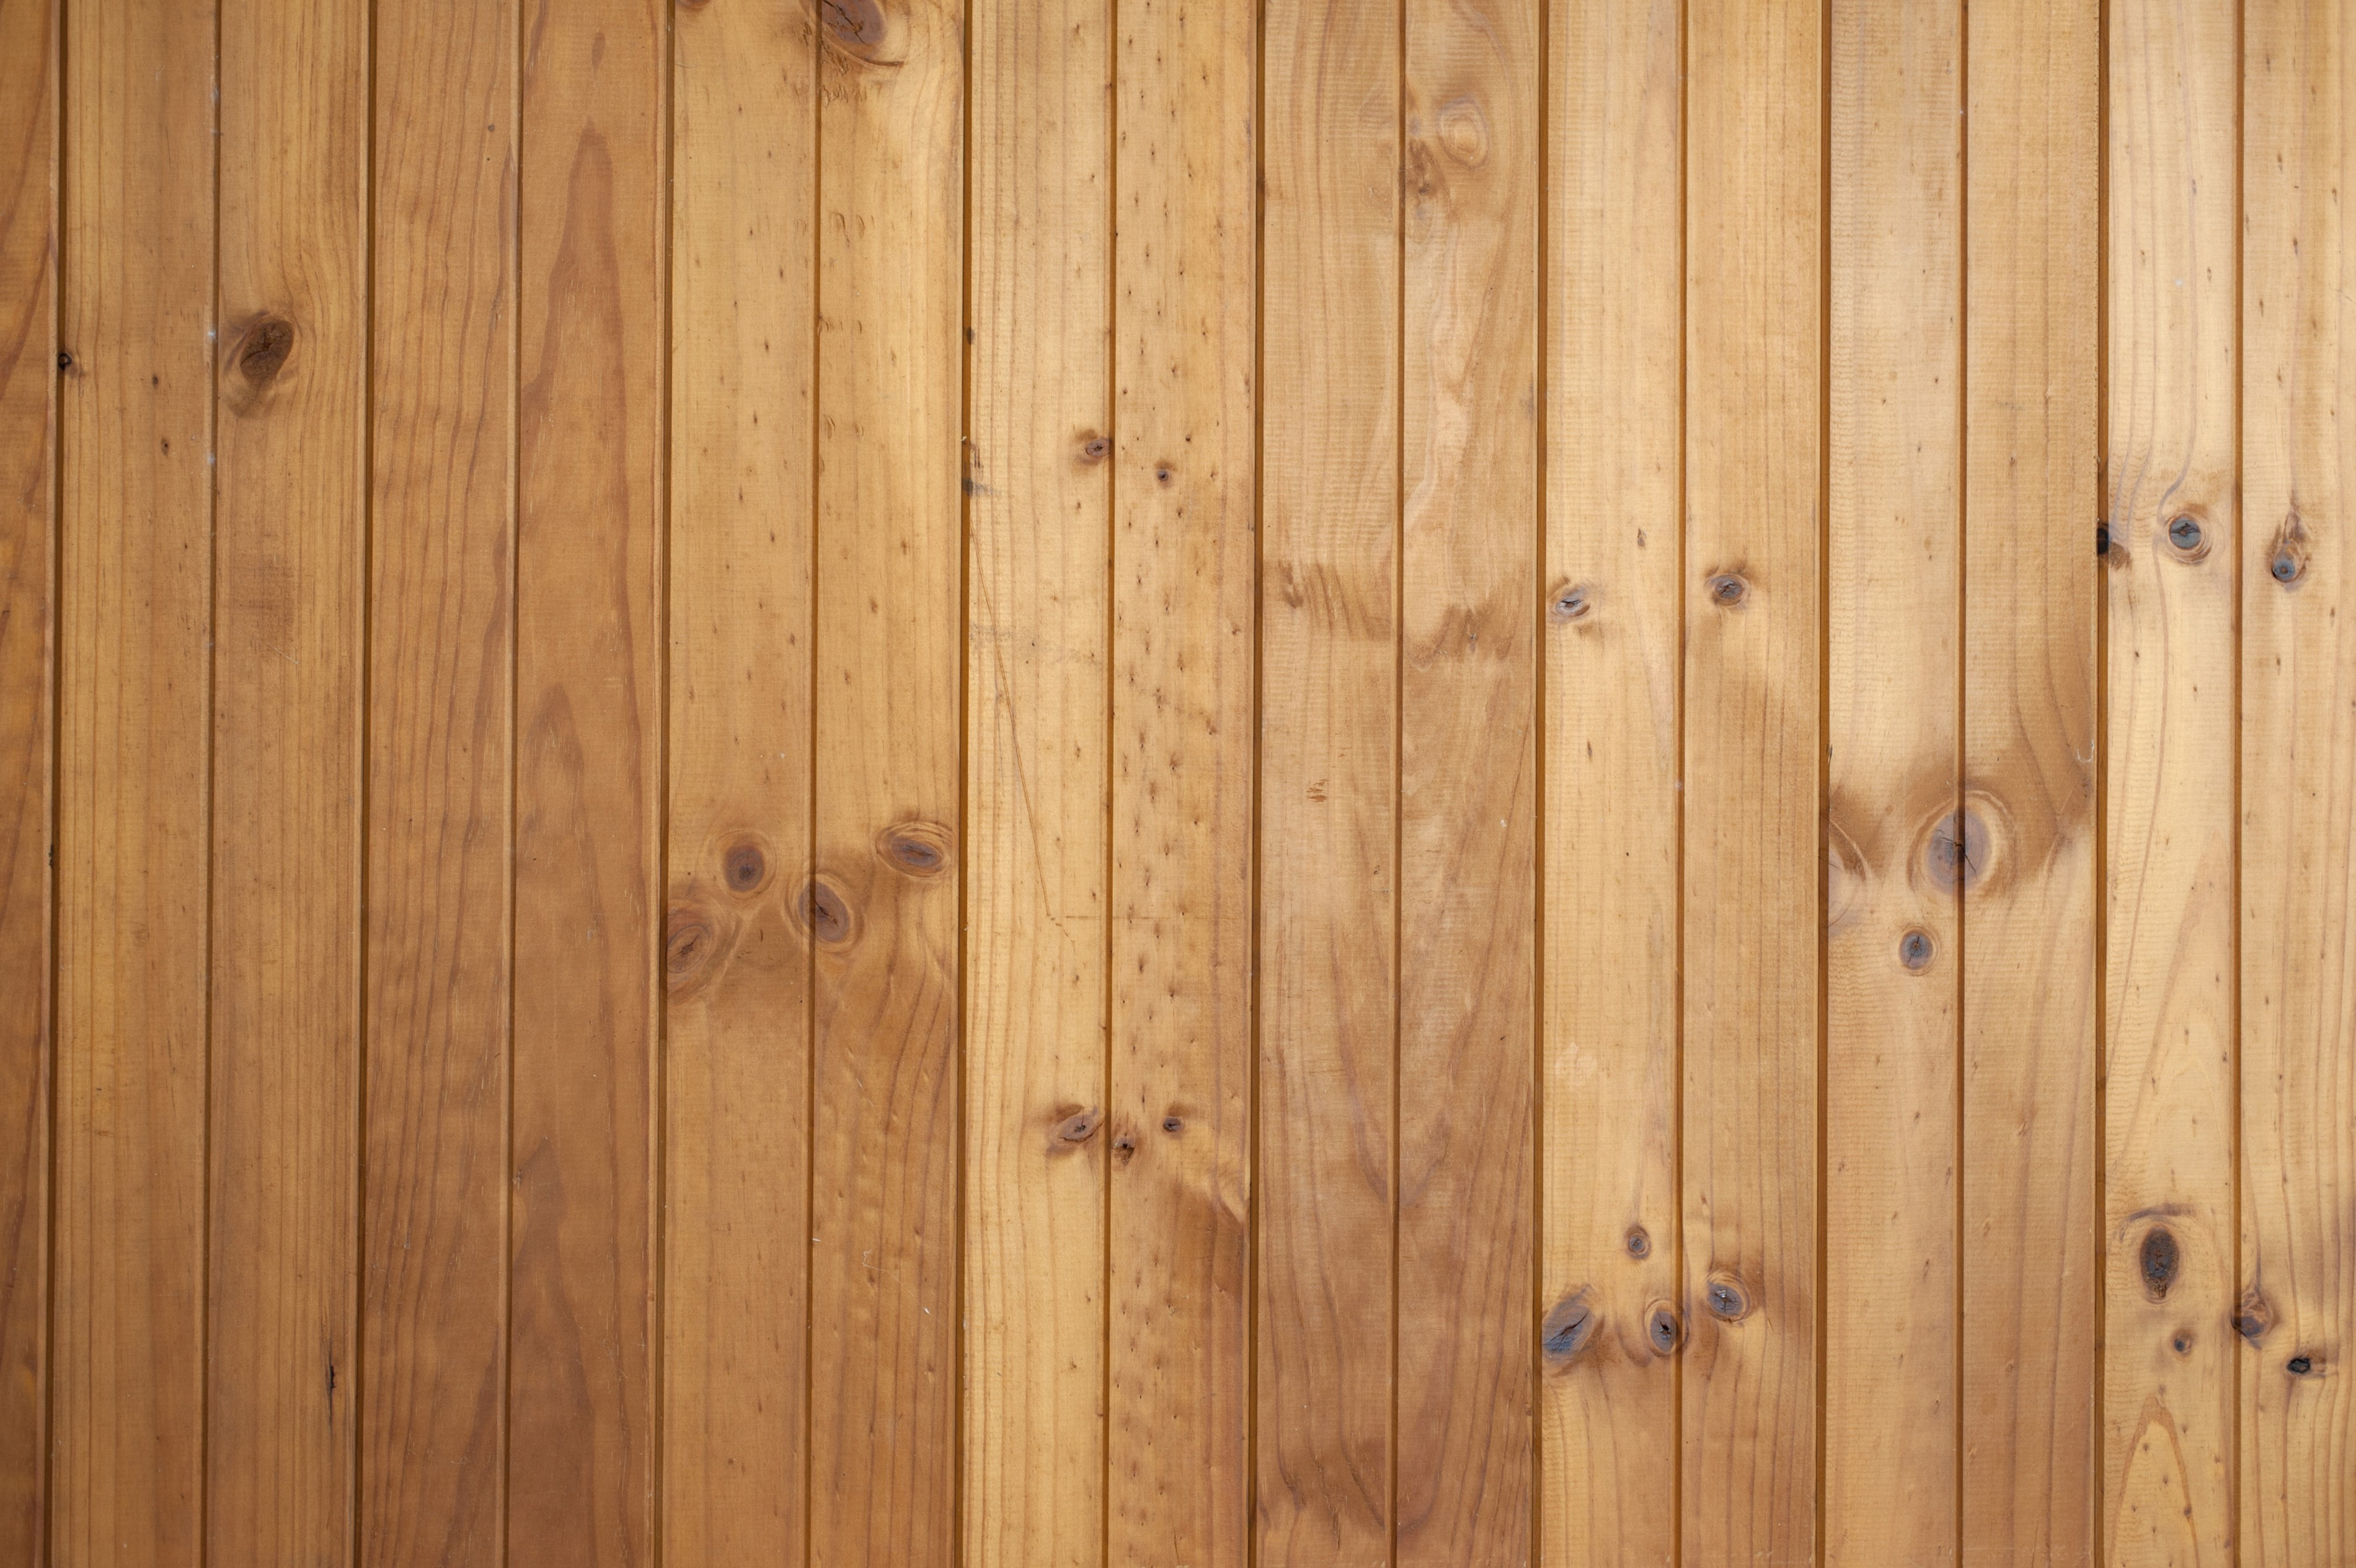 exterior house design textures html with Wood Planks on Brown tan brick further 2012 03 01 archive in addition Wood planks also 56718 Graphicriver Roof Tile Background 5409656 in addition Photoshop Backgrounds   Files Free Download.